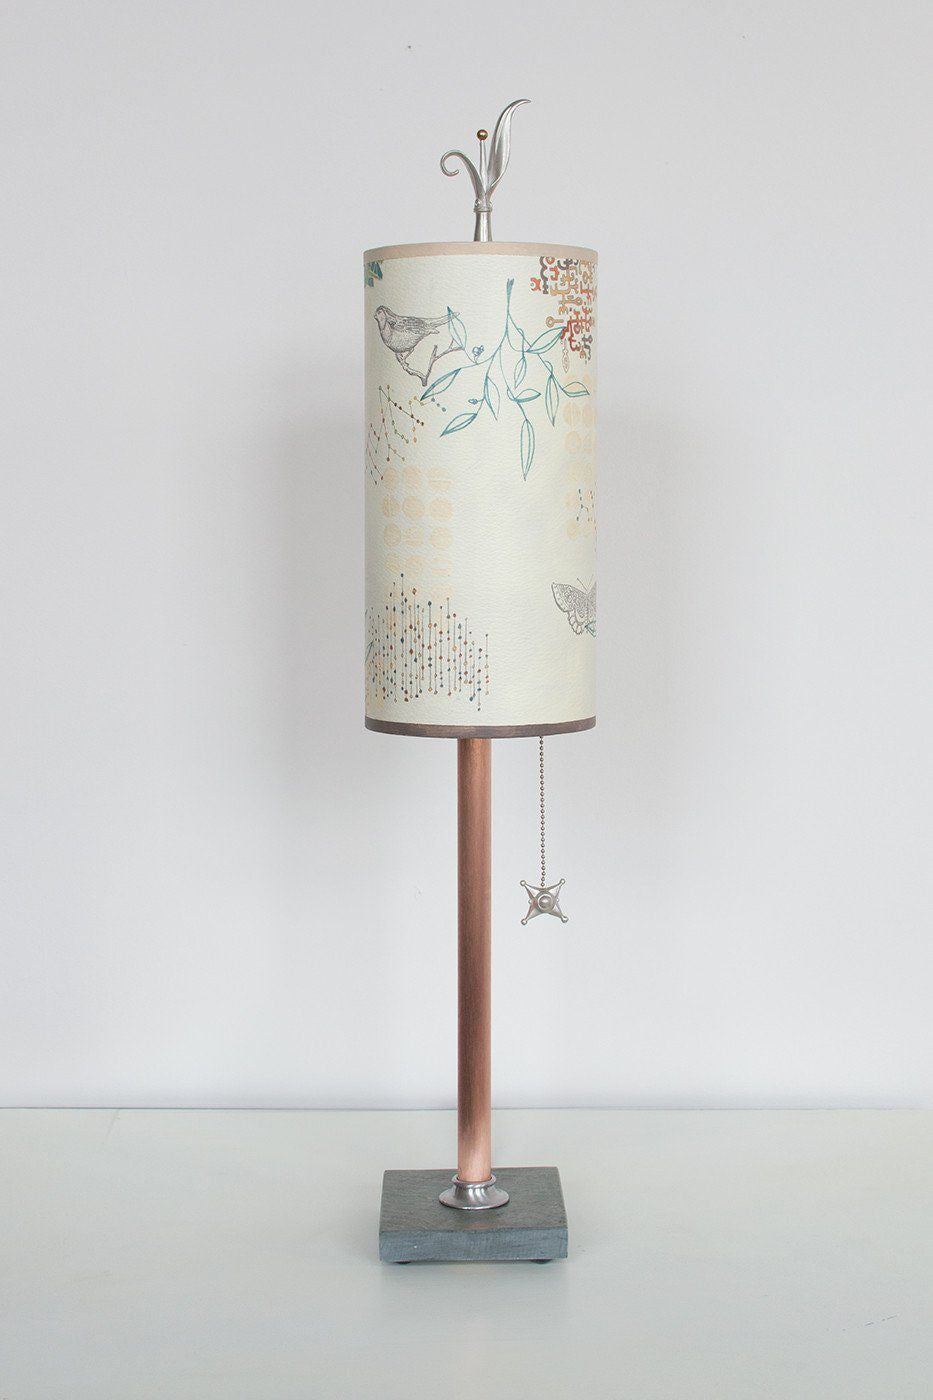 Copper Table Lamp on Vermont Slate with Small Tube Shade in Ecru Journey